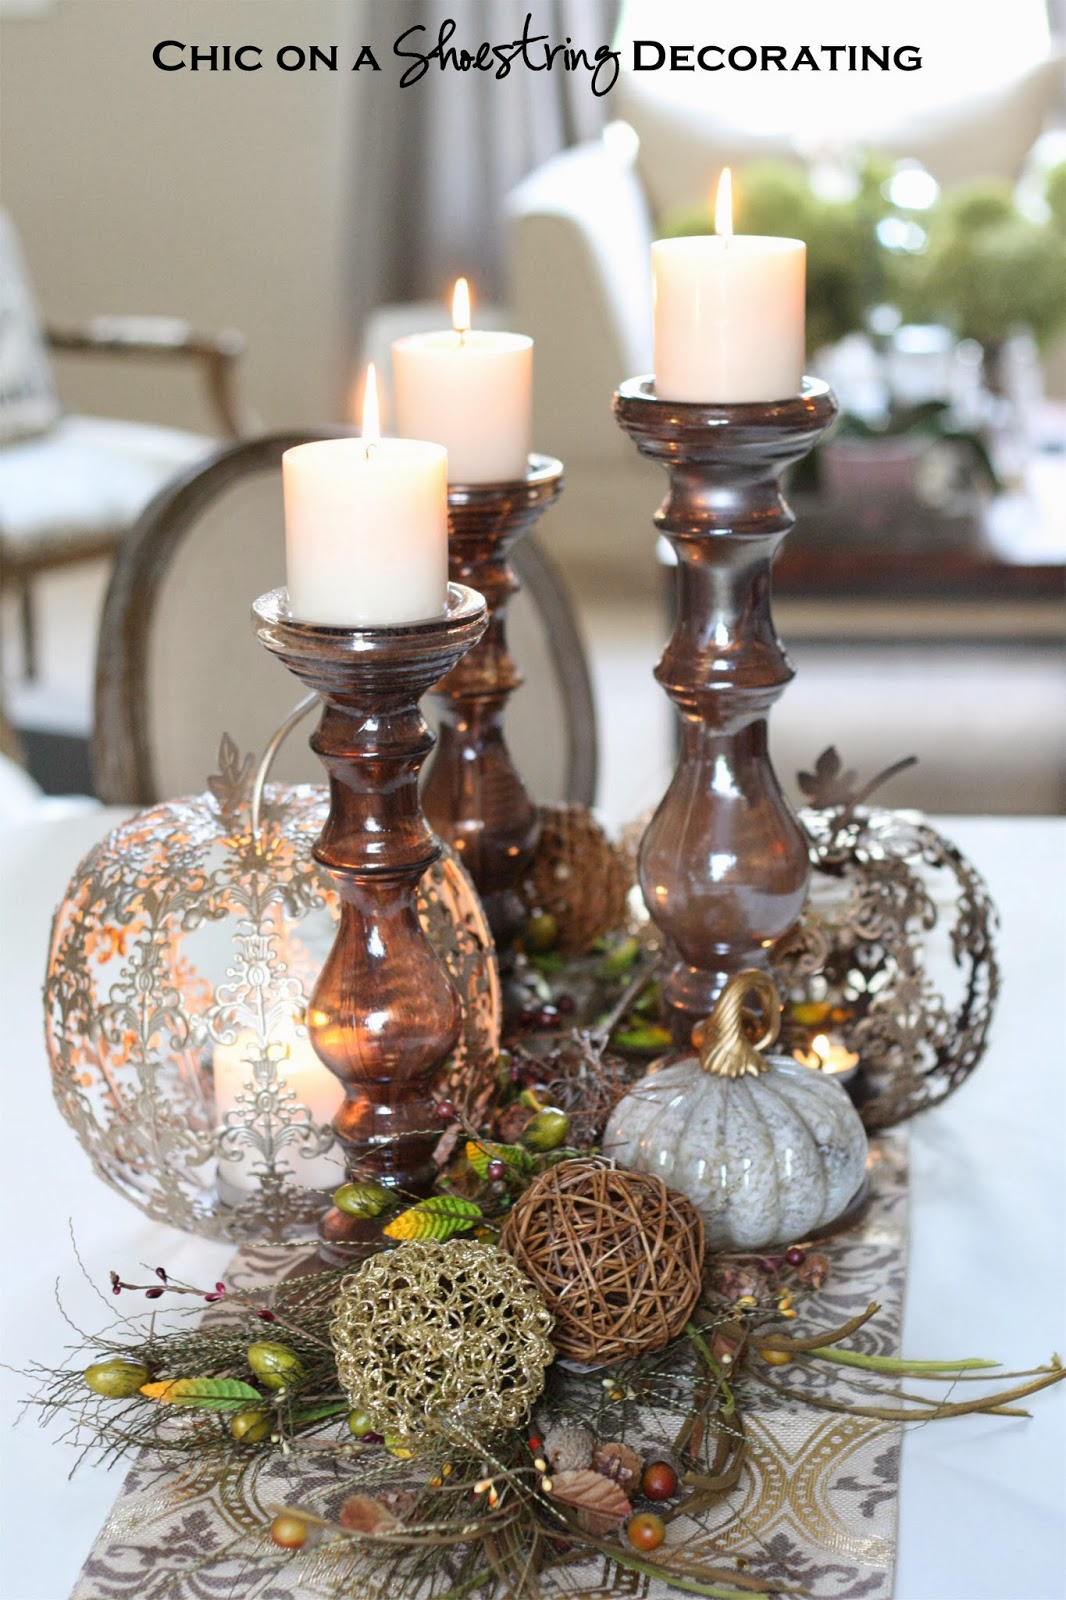 Chic on a shoestring decorating fall centerpiece and pier